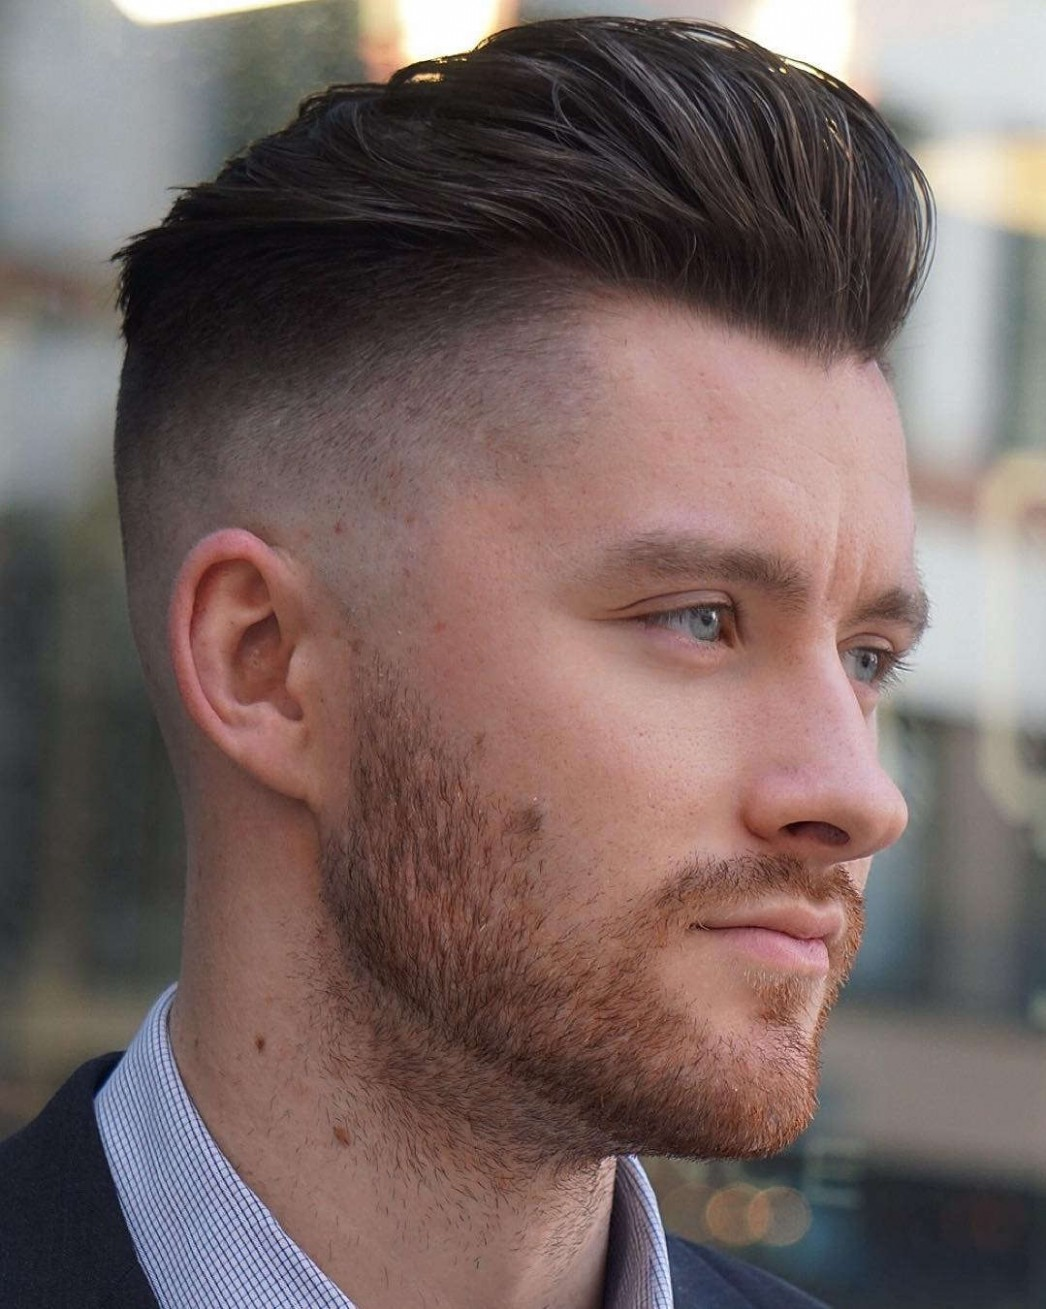 9 Stylish Undercut Hairstyle Variations To Copy In 9: A Undercut Long Top